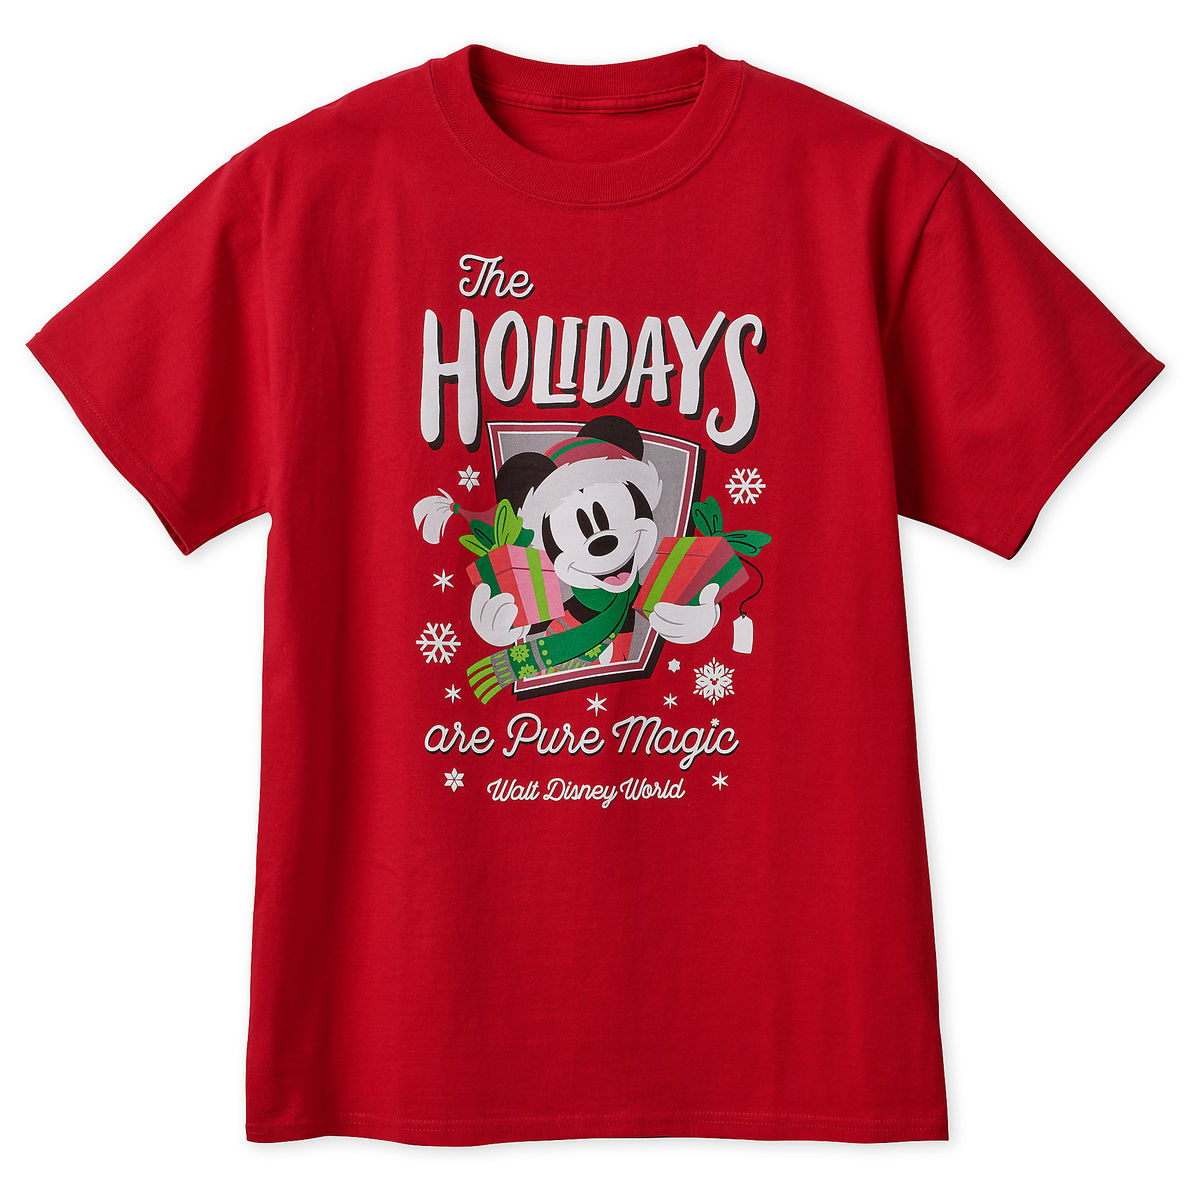 46eb6e3cd2a3e Disney Adult T-Shirt - Mickey Mouse Holiday - Walt Disney World - Red